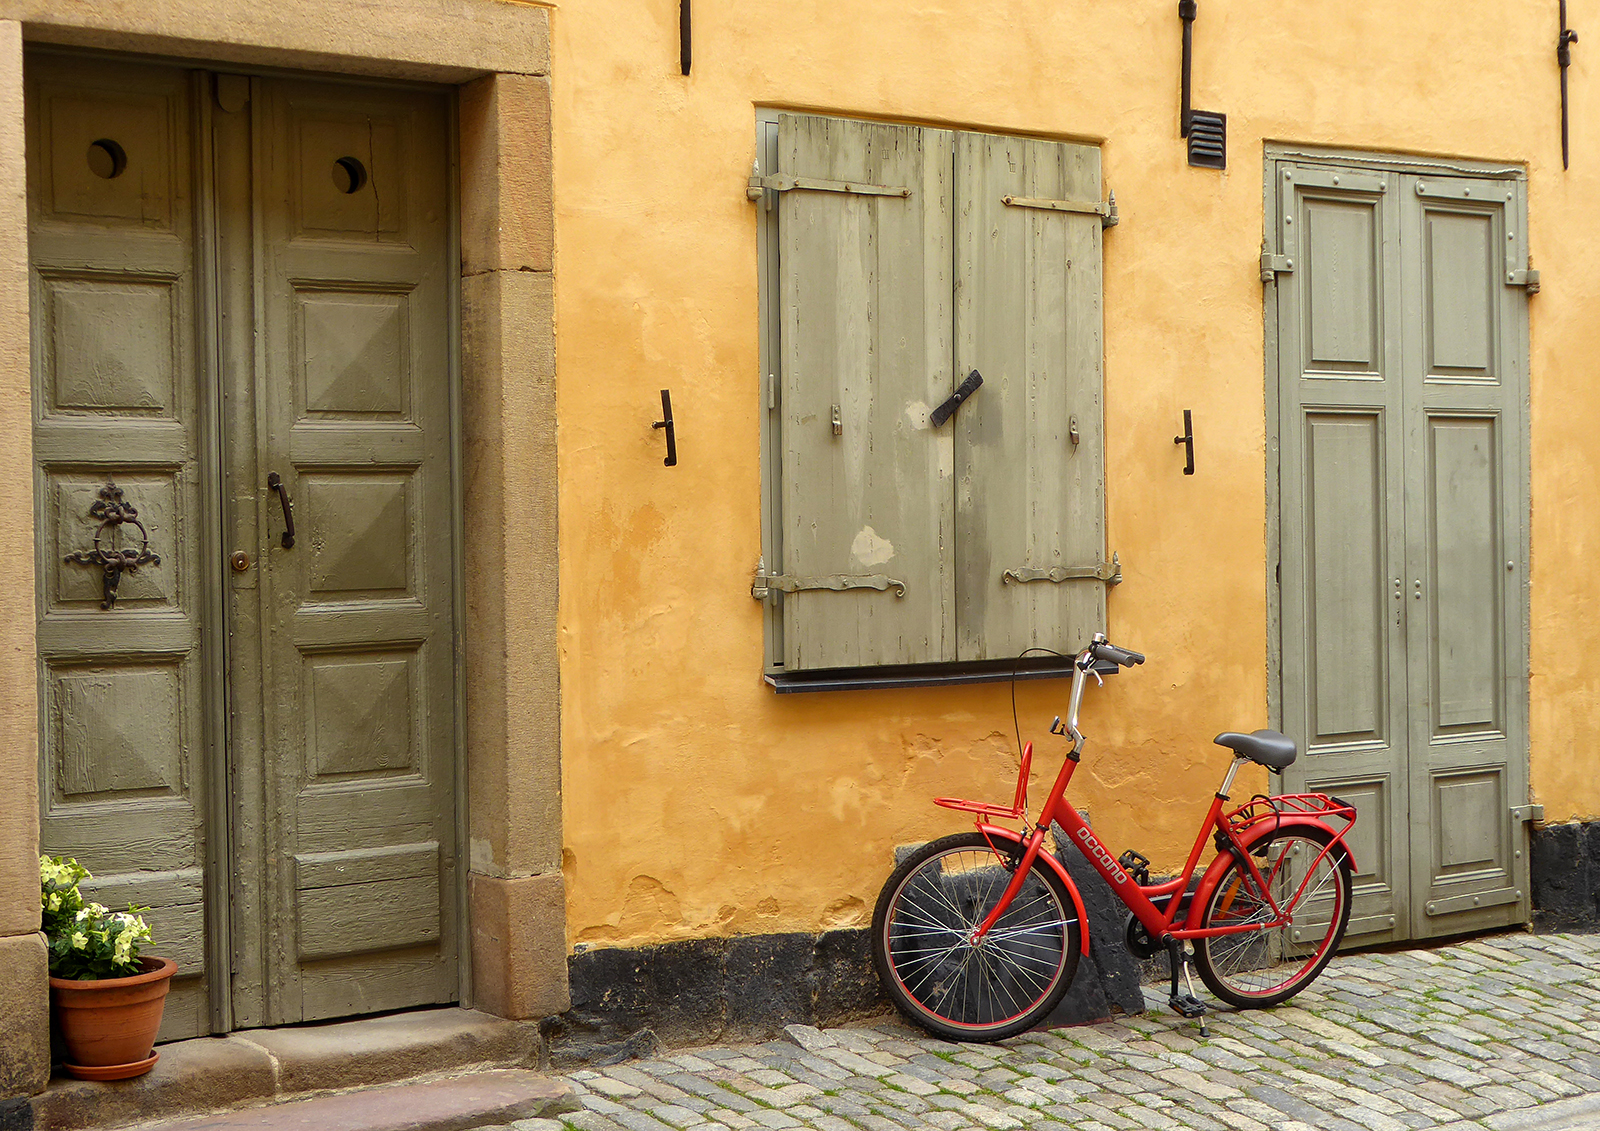 'The Red Bicycle' by Linda Oliver